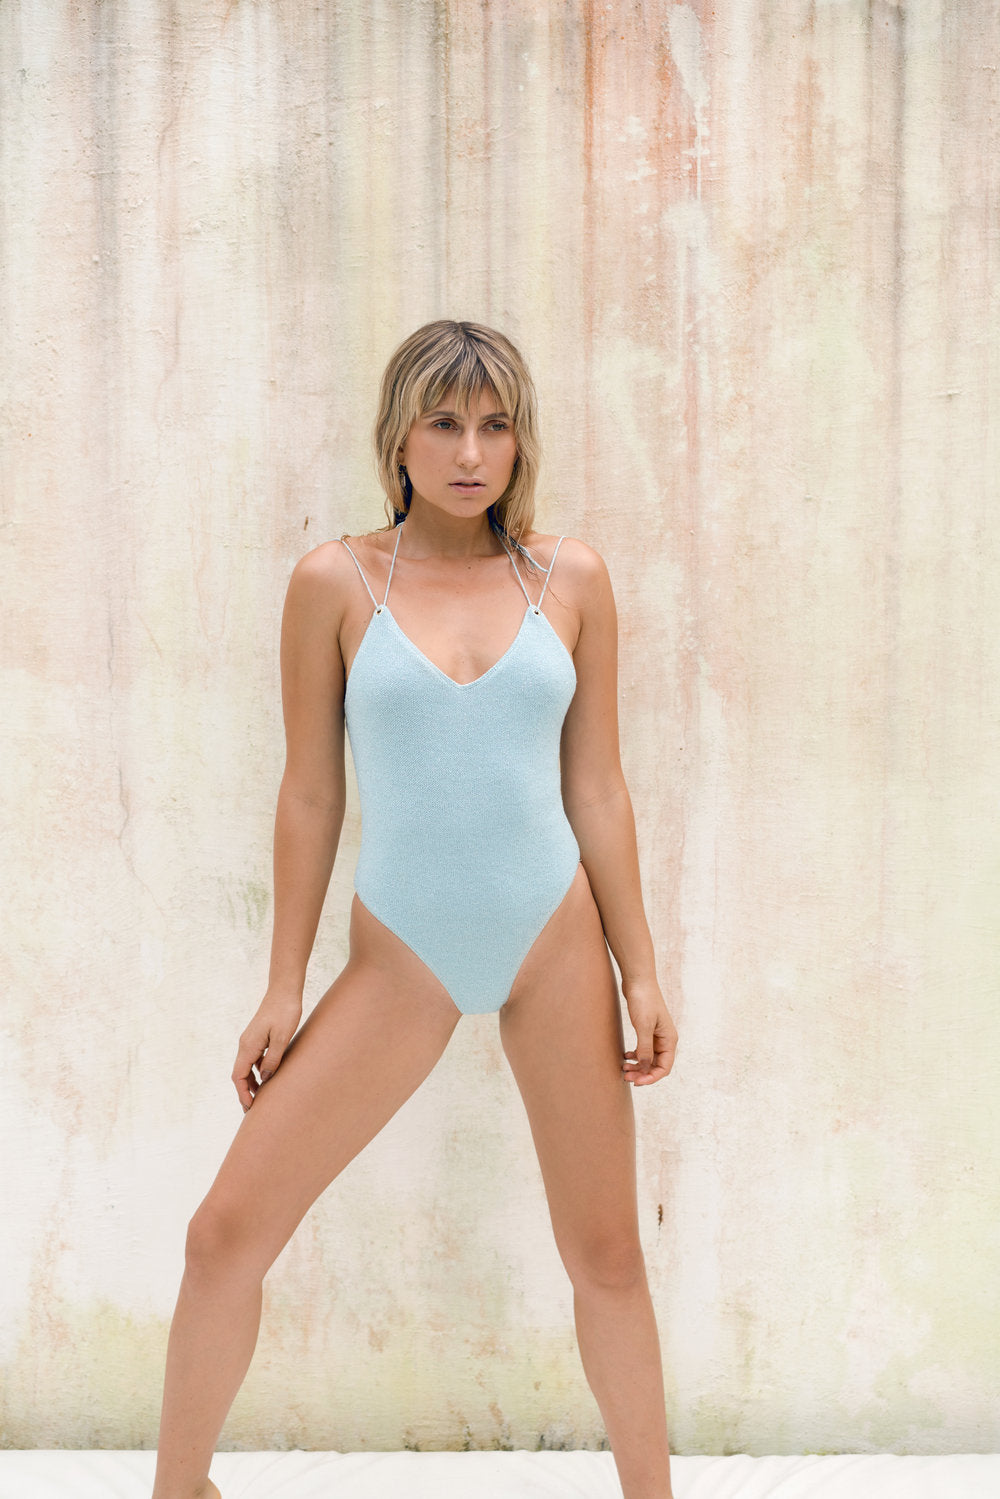 SOLAR ONE PIECE - MISTY